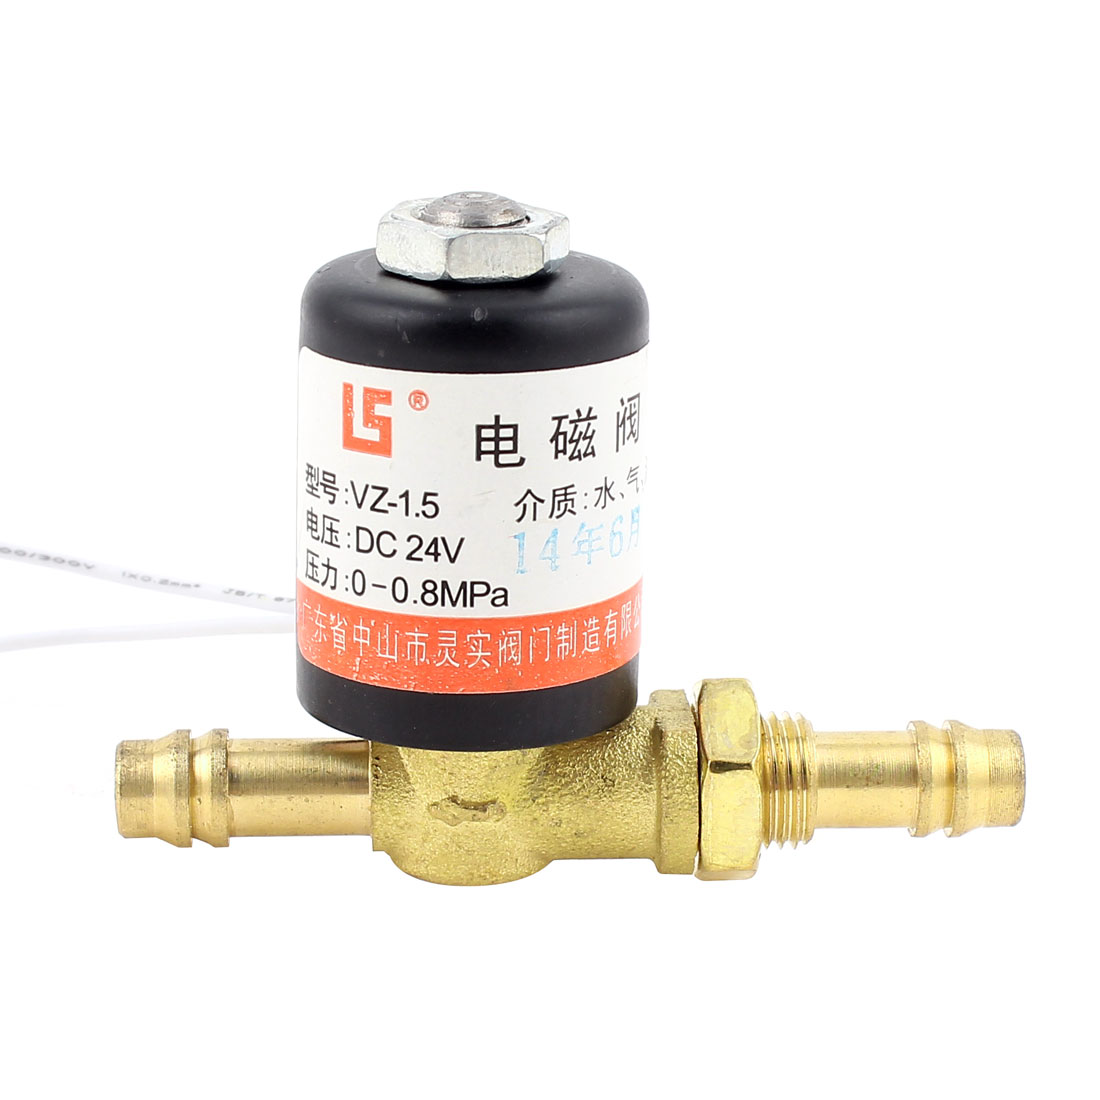 DC 24V 0-0.8Mpa 2Position Dual Way Solenoid Valve for 8.5mm Inner Dia Hose